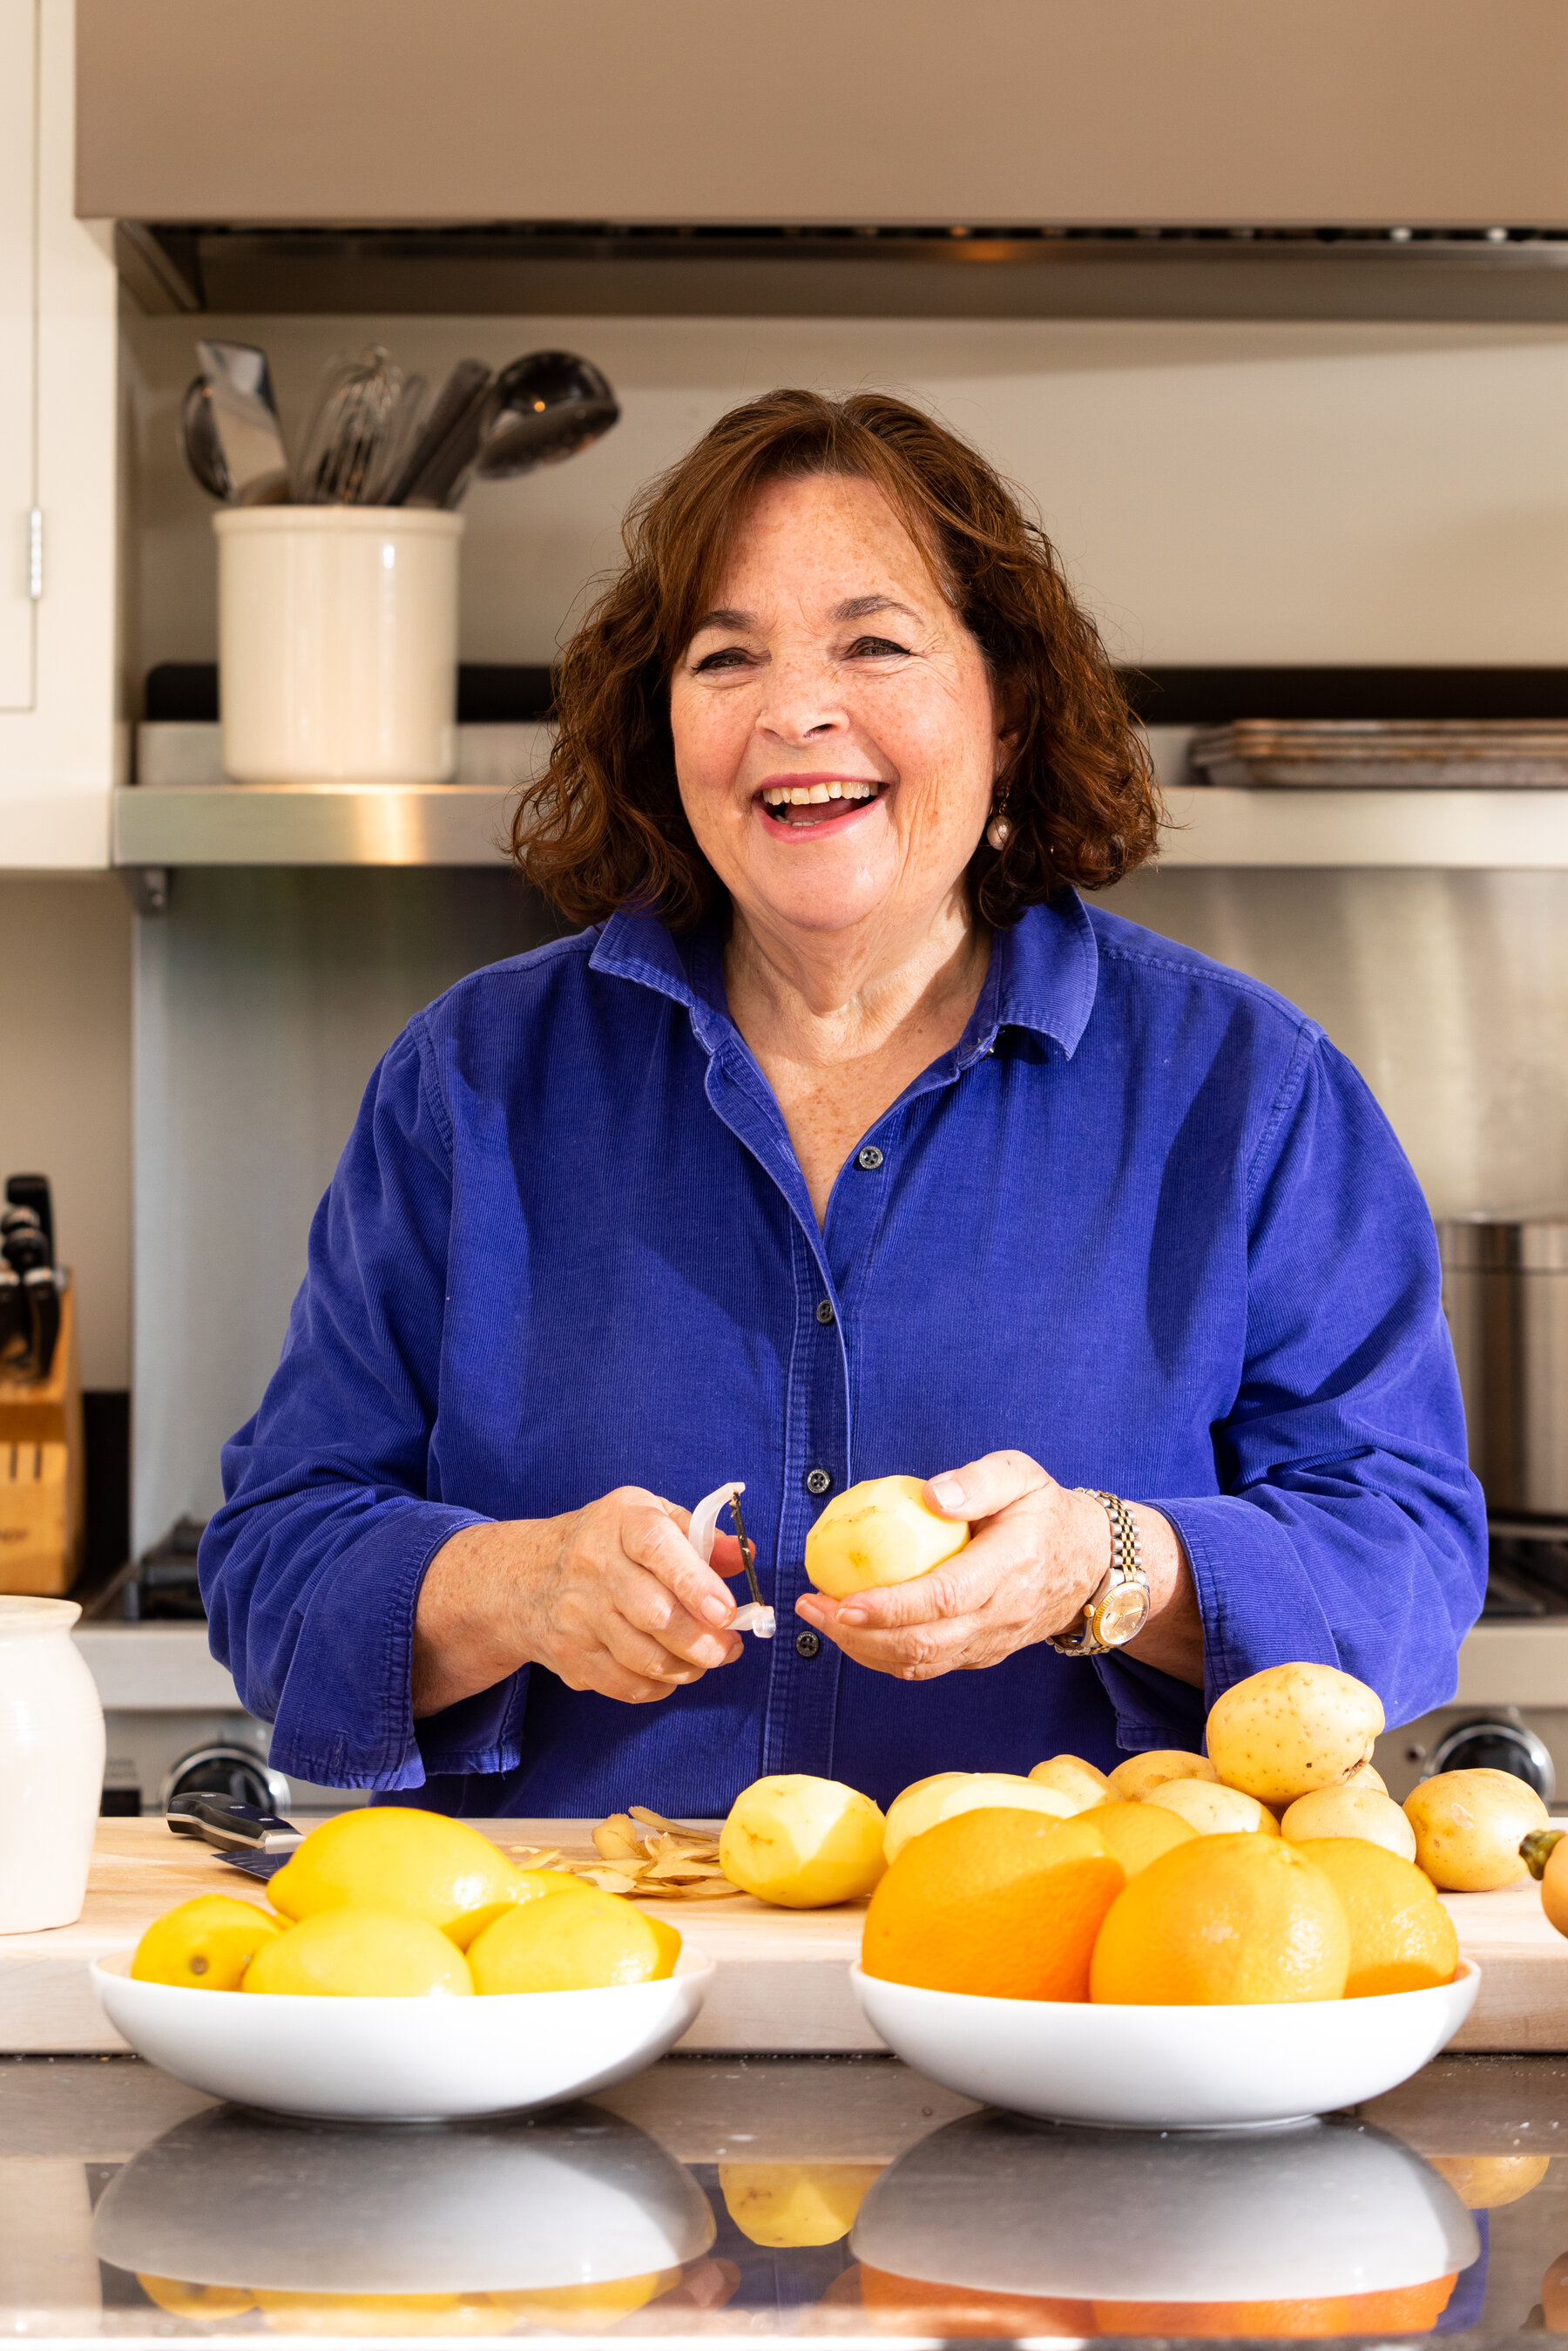 1 1/2 pounds russet (baking) potatoes, peeled (2 large) · 1 medium yellow onion · 2 tablespoons melted butter, plus extra for the waffle iron · 1. How Does Ina Garten The Barefoot Contessa Do It The New York Times